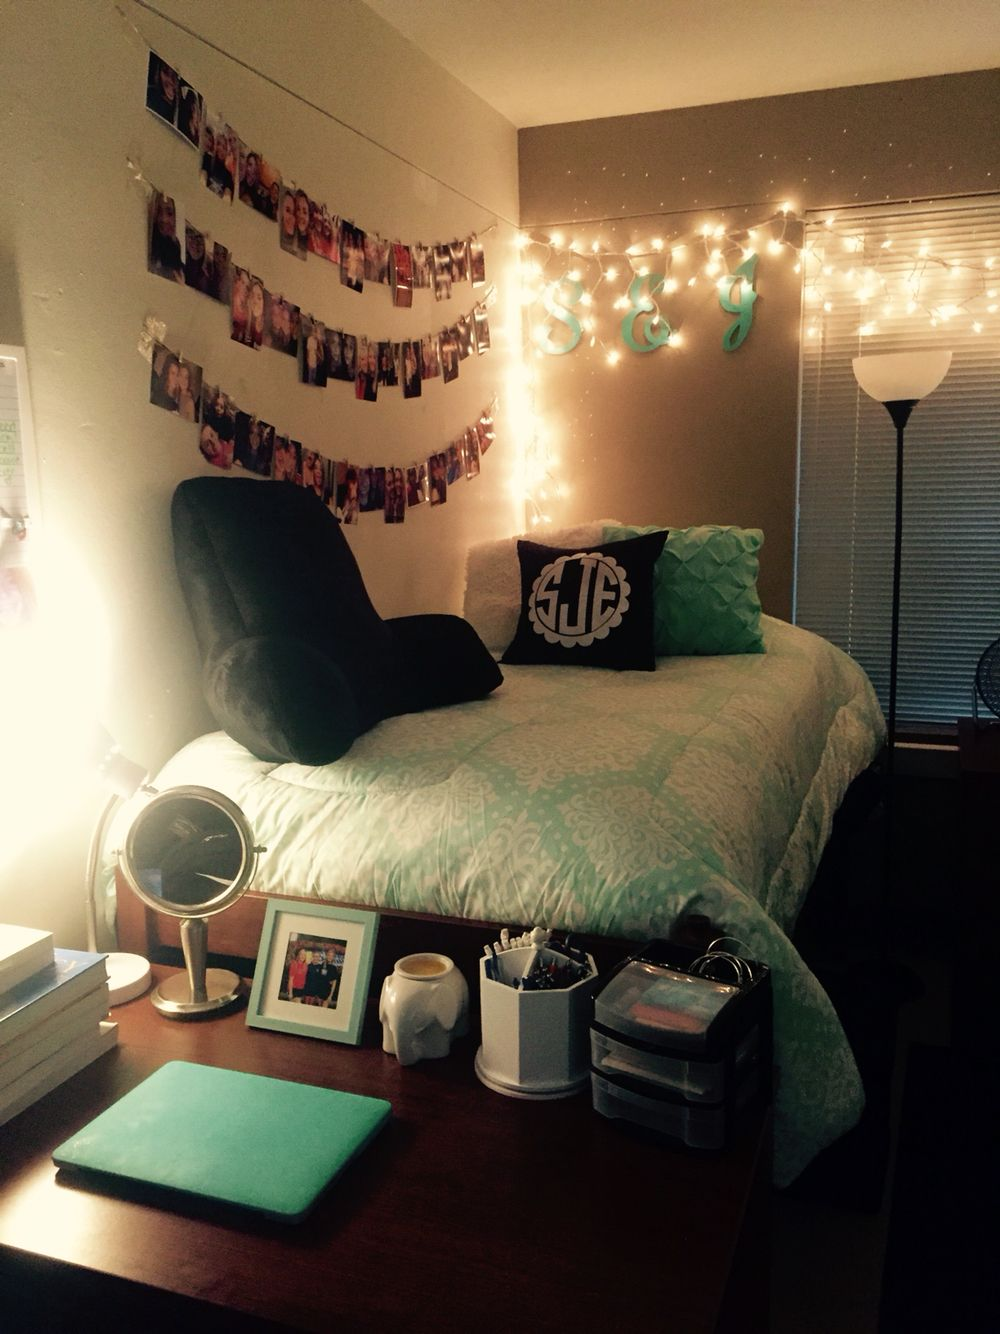 College dorm room 2015 college bound pinterest for Room ornaments